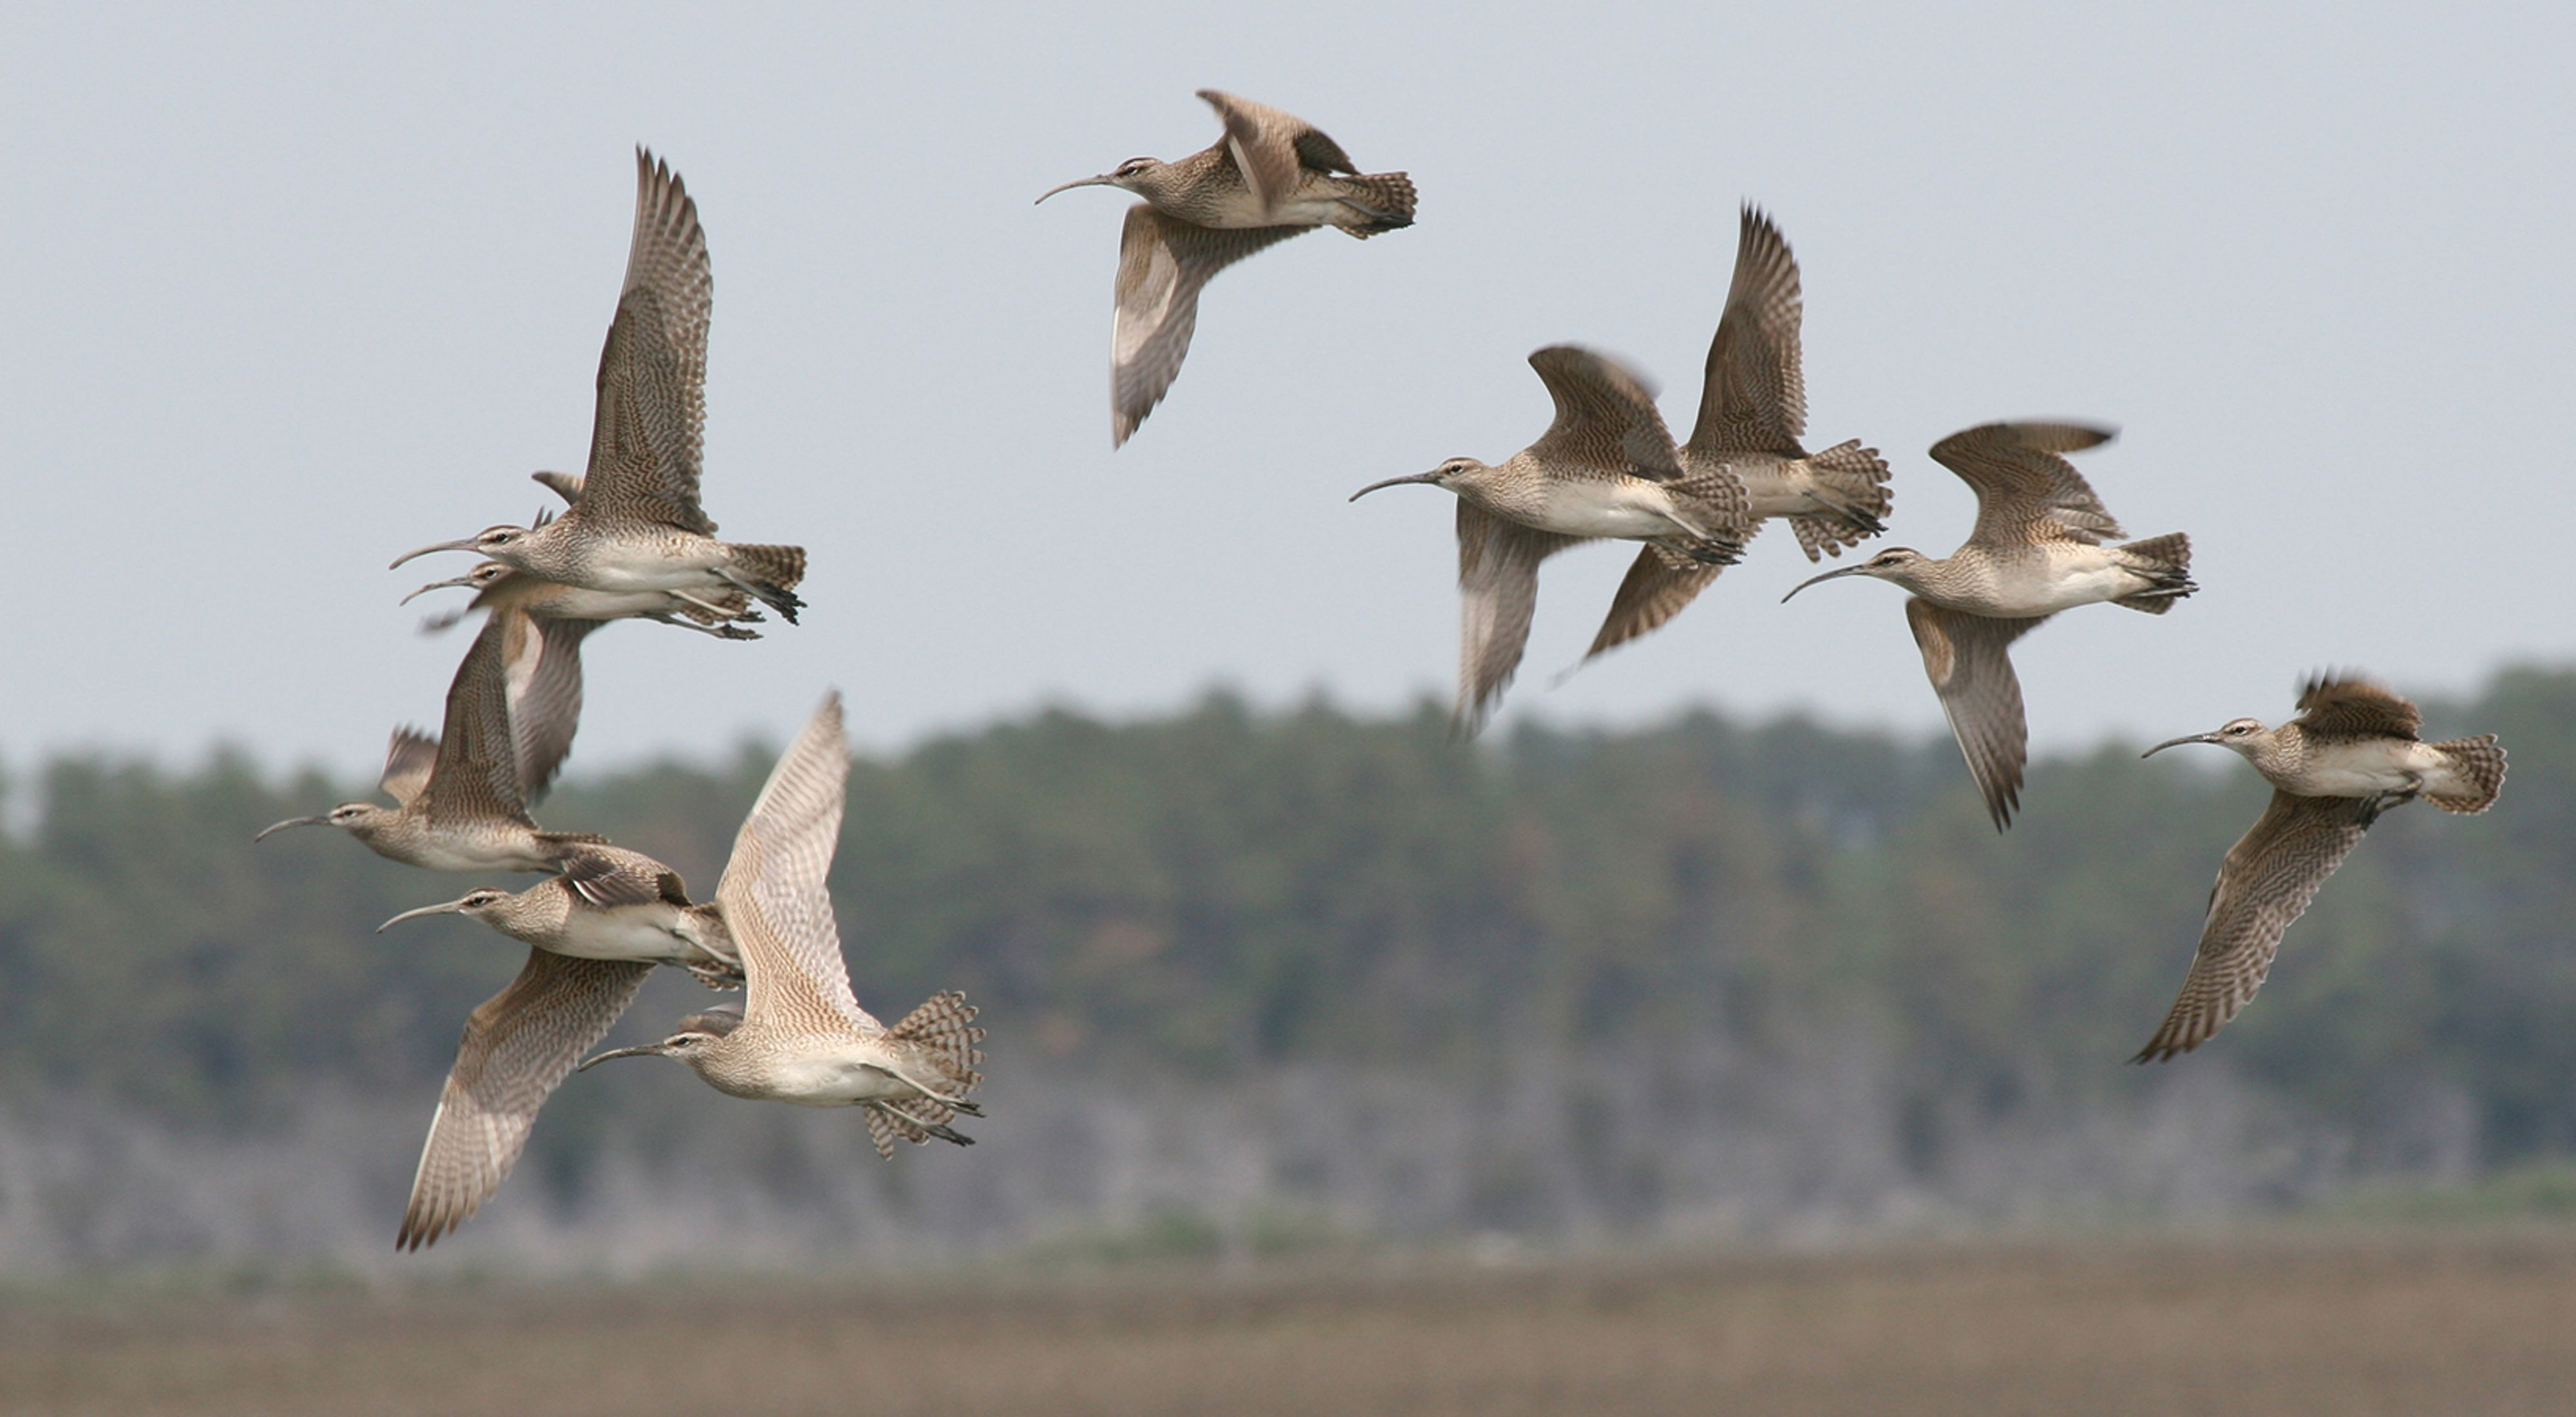 A flock of ten white and tan birds with long, thin beaks in flight.